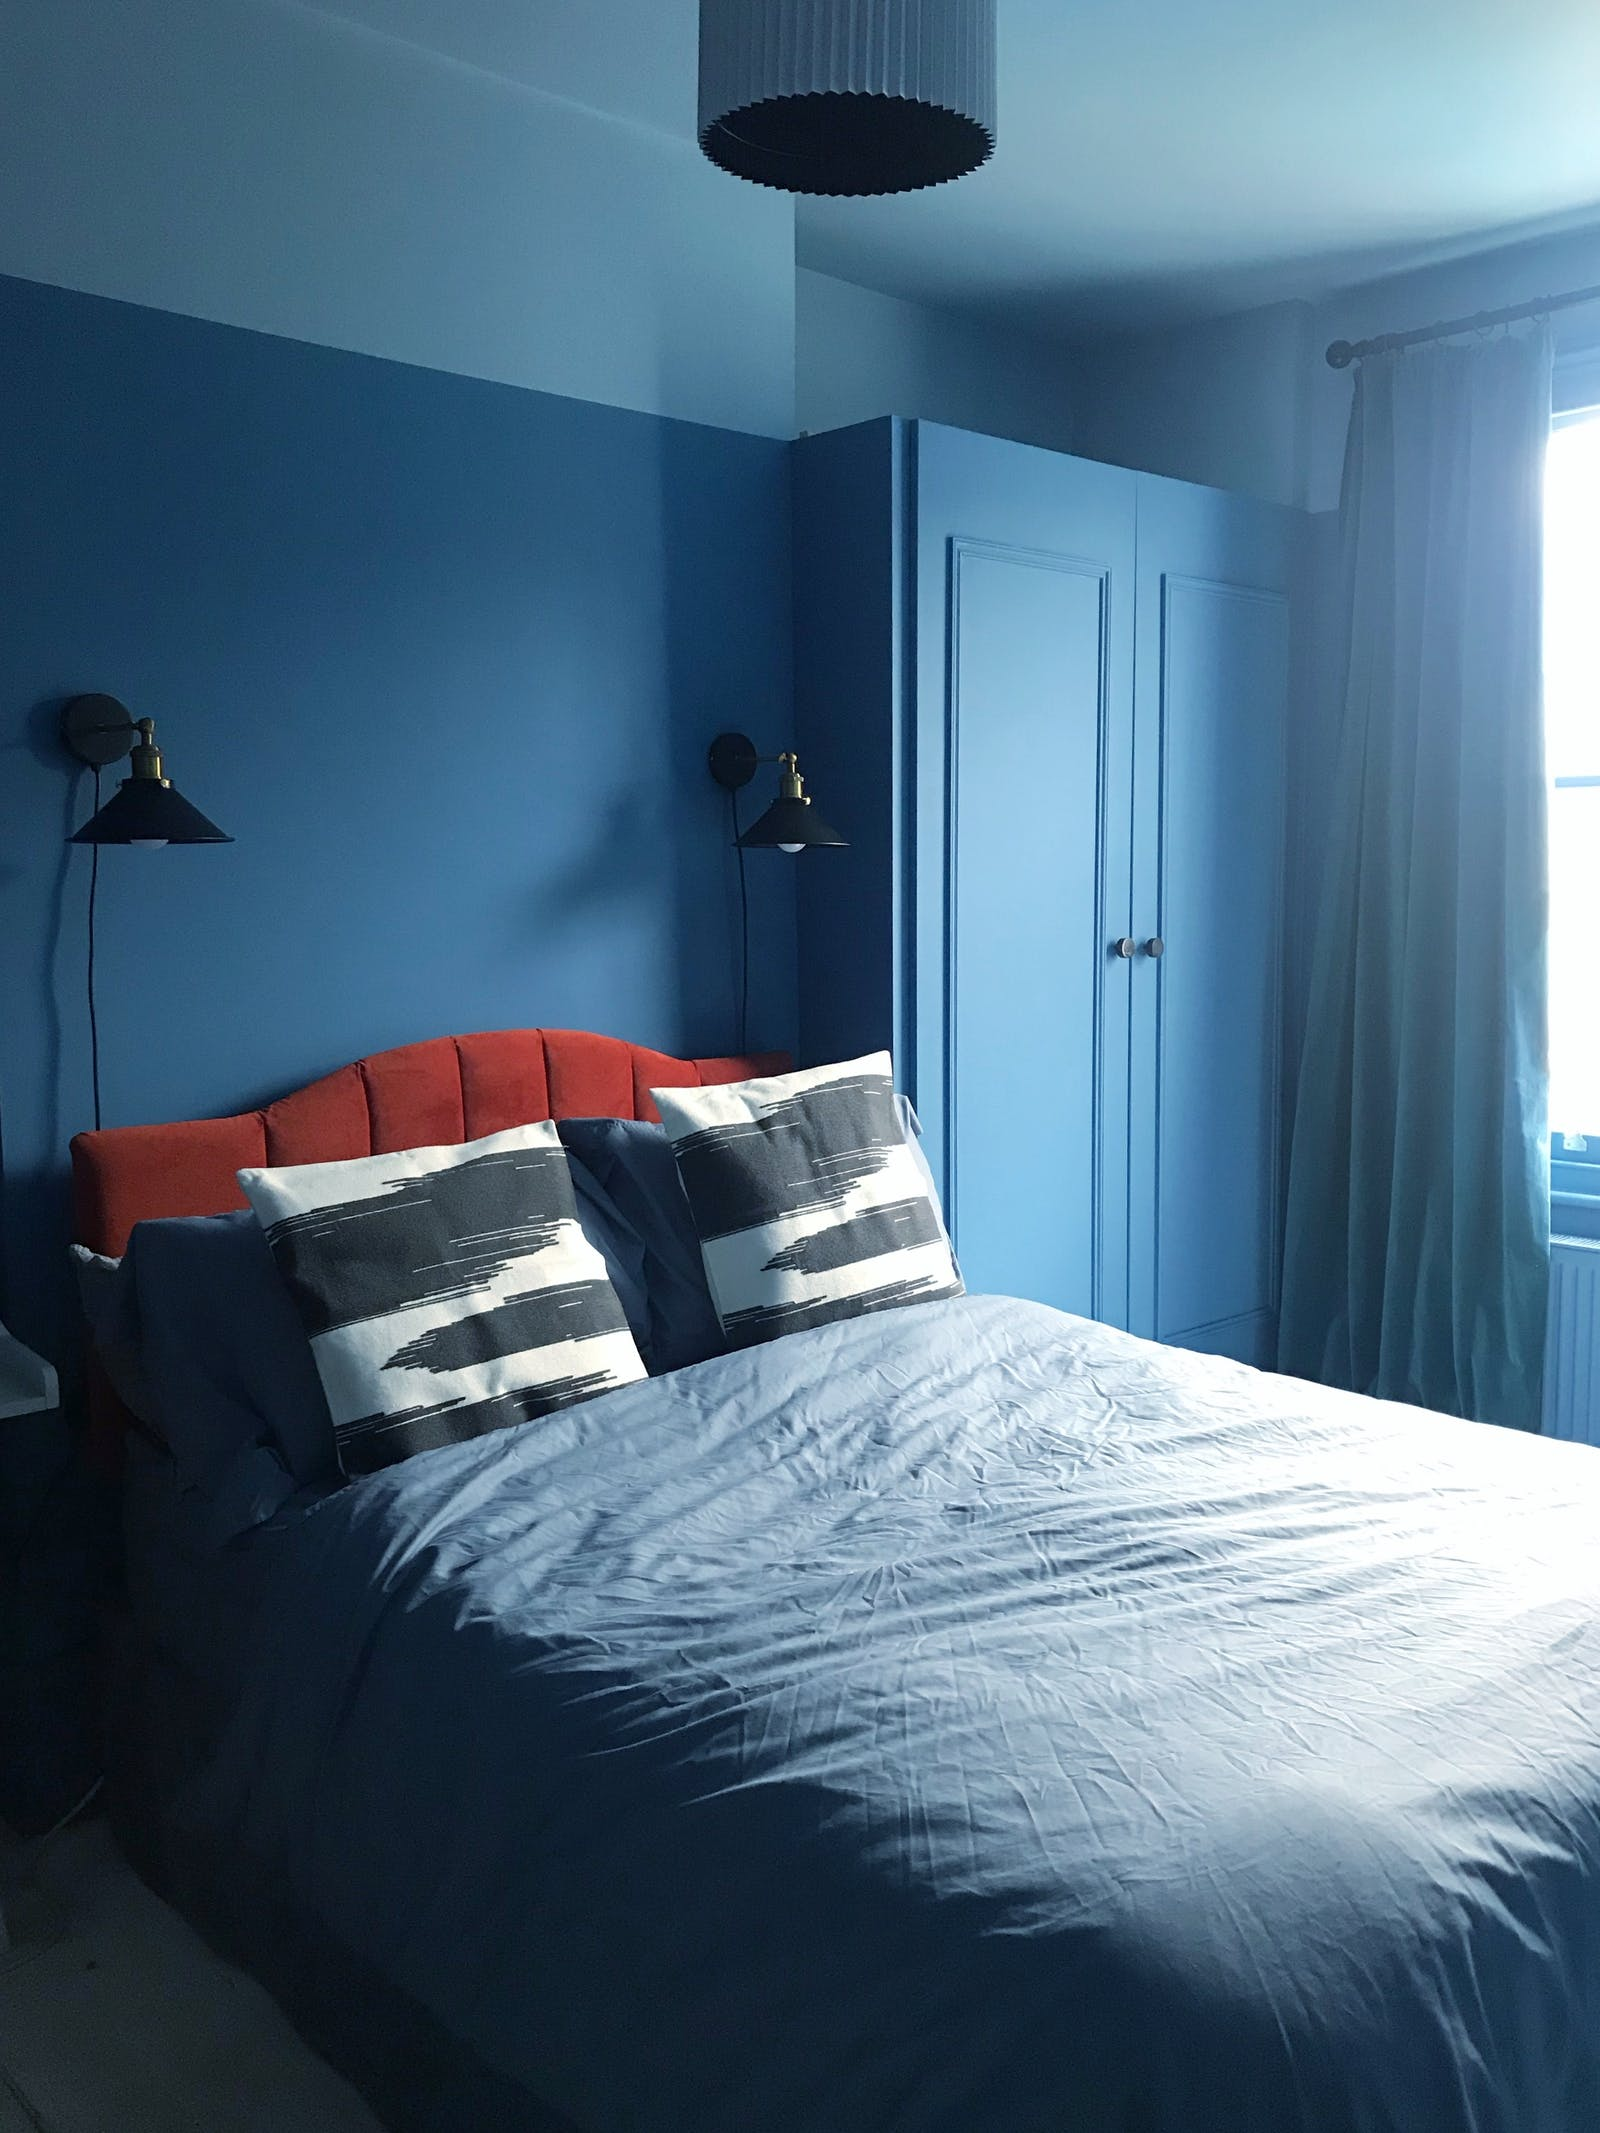 Blue room painted in Lick Blue 04 and Blue 05 with red headboard